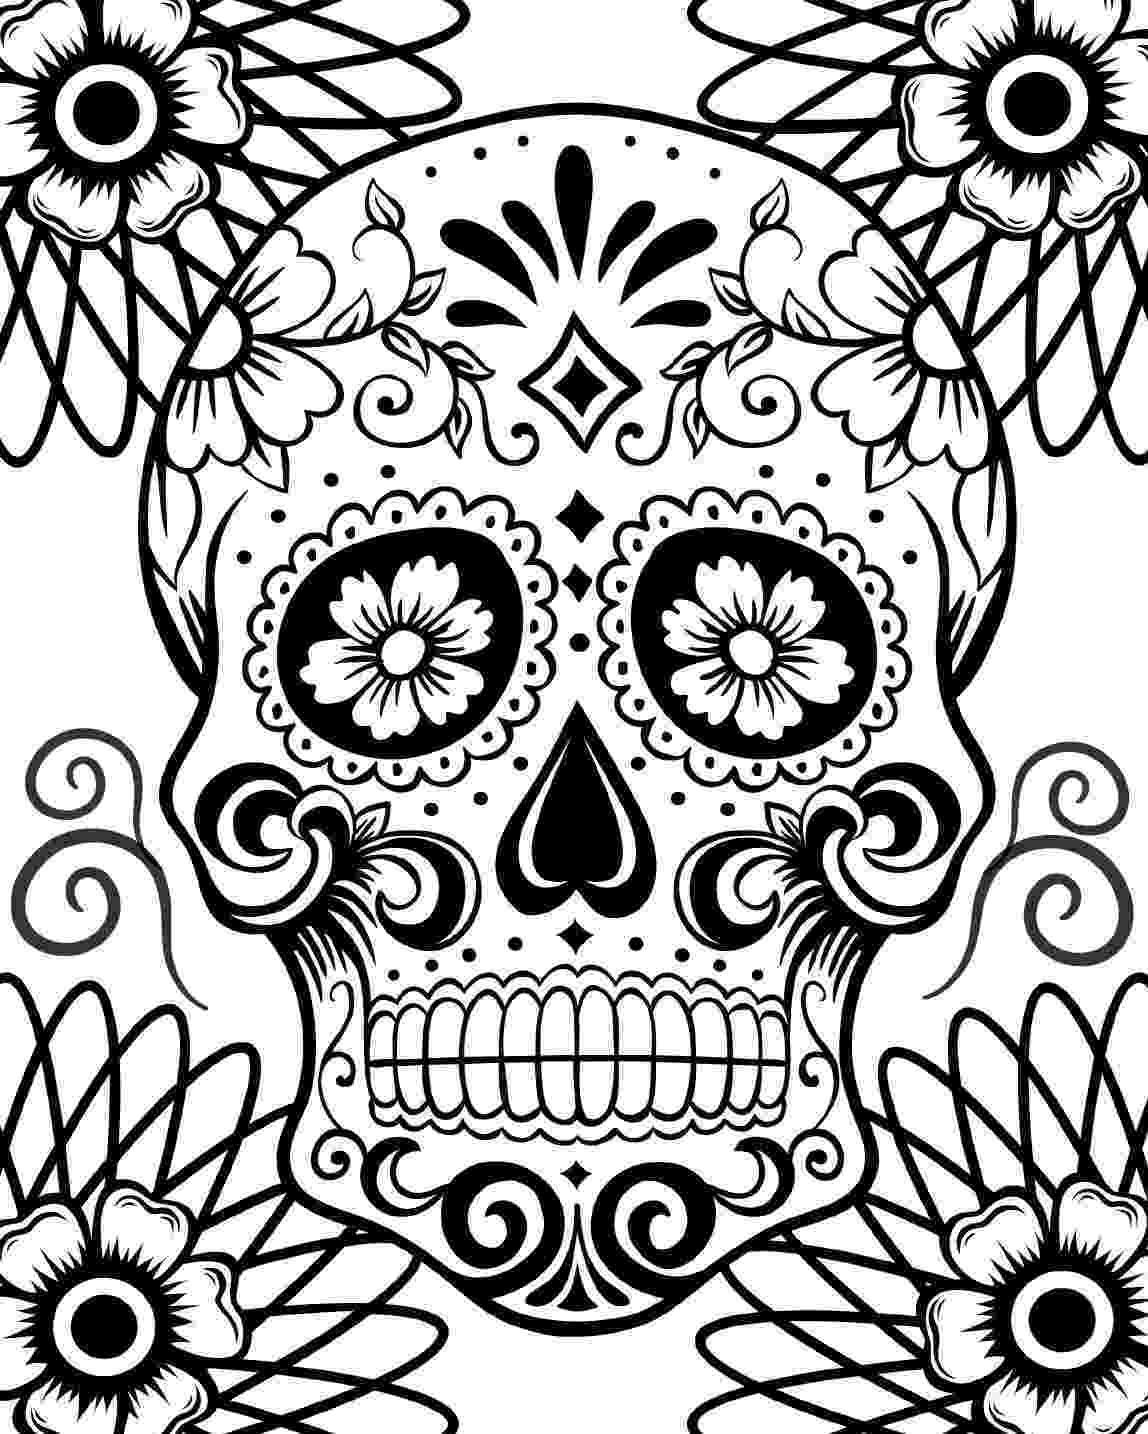 coloring pages for adults day of the dead free print doodle pages day of the dead coloring page pages coloring the dead day of adults for